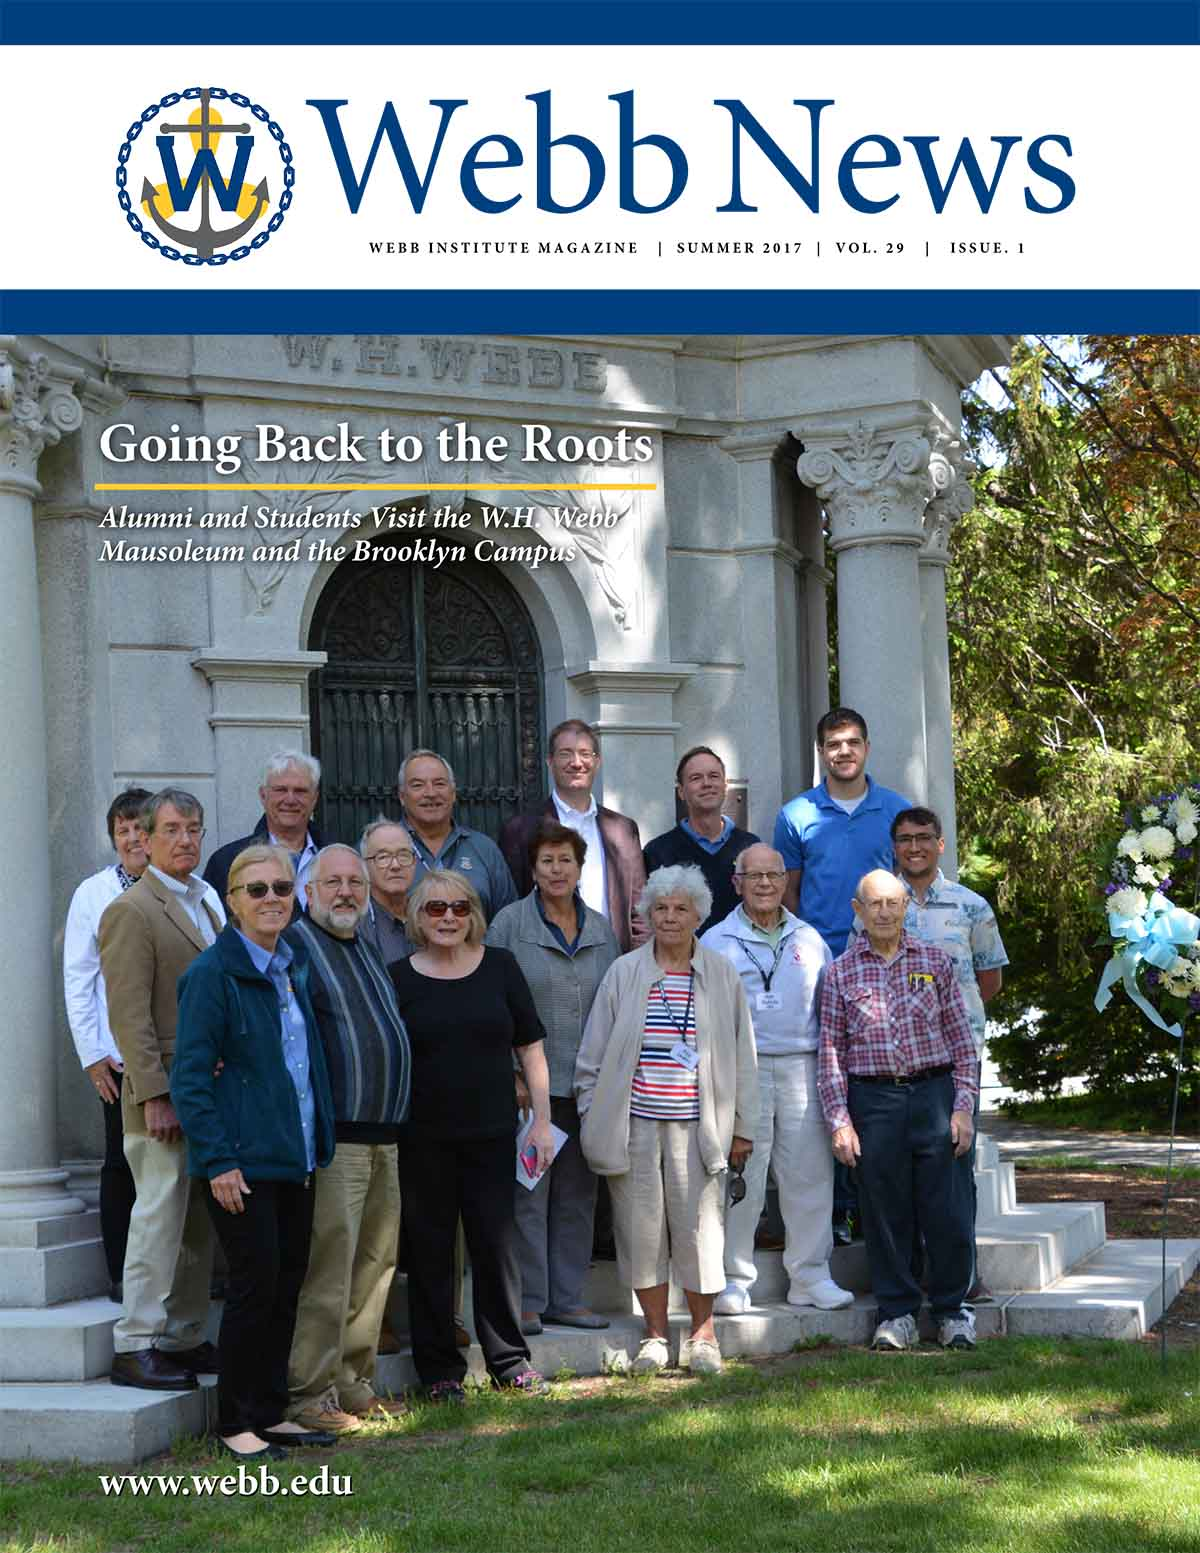 Webb News Summer